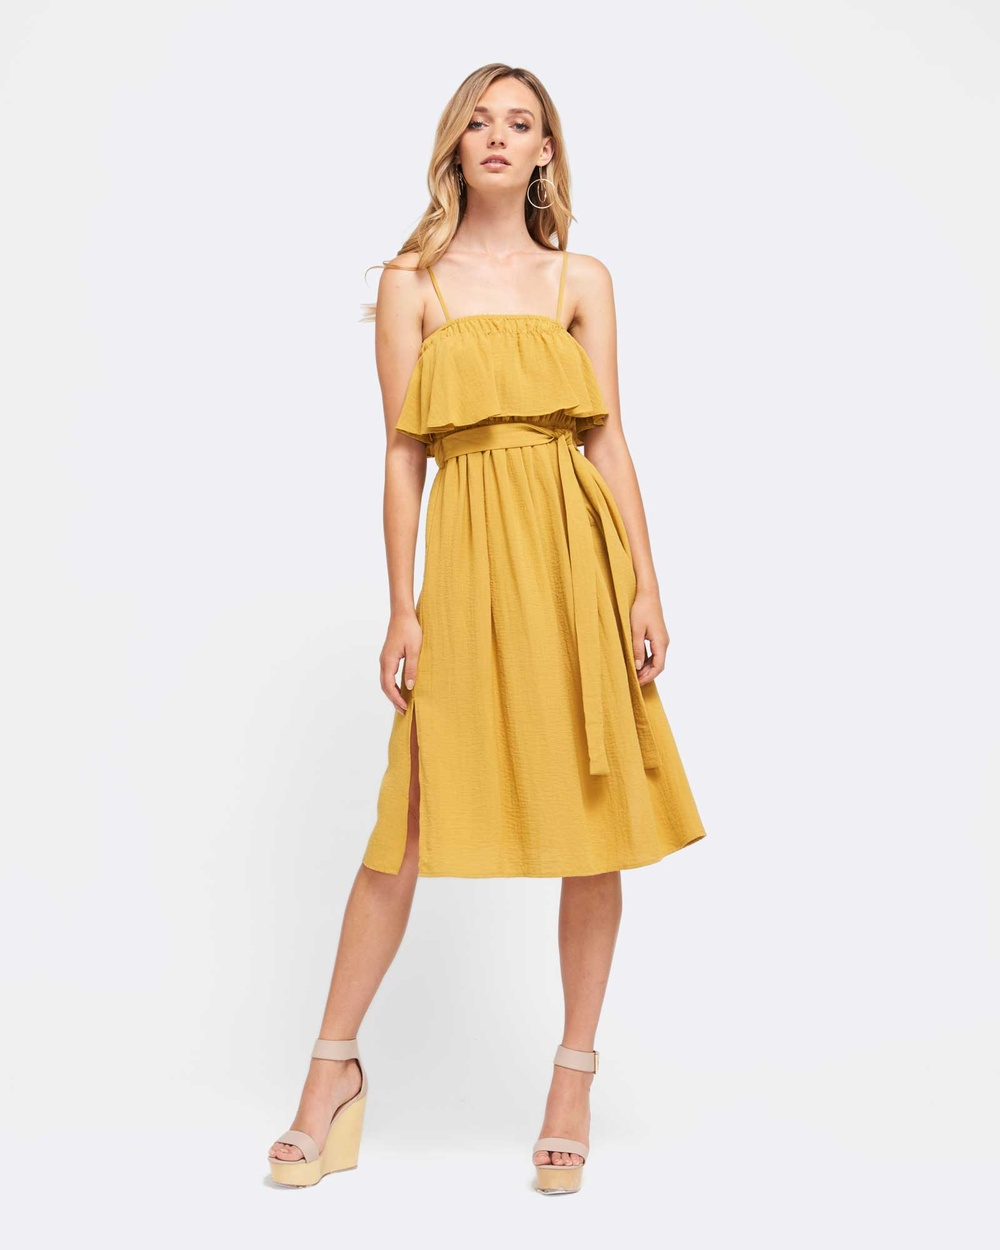 Photo of MVN MVN Sunset Lover Dress Dresses Mustard Sunset Lover Dress - Make an entrance with this MVN Sunset Lover dress. This mustard stunner comes with an elasticated ruffled neckline and cinched tie around the waist to create the perfect silhouette. With adjustable straps and slits on the sides of the dress, it's definitely a key must have for the summer. Our model is wearing a size 8 dress. She usually takes a standard AU 8 size, is 5'11 (180cm) and has